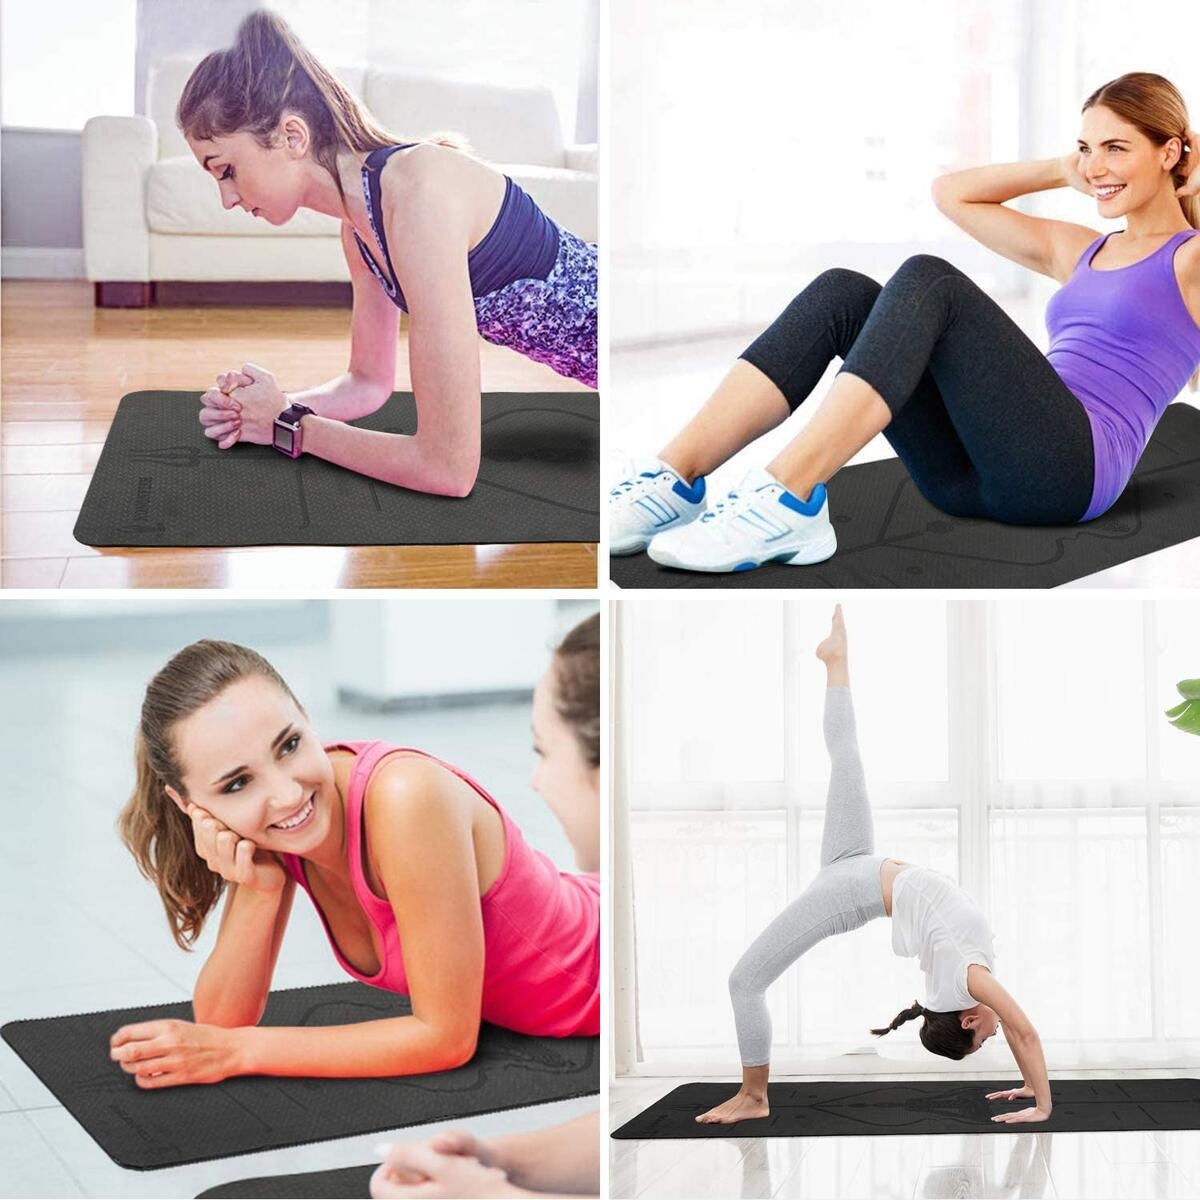 Non Toxic Eco Friendly Yoga Mat with Carrying Strap & alignment lines,yoga mats for women thick non slip,Workout Mats for Home, Pilates and Fitness Exercise.